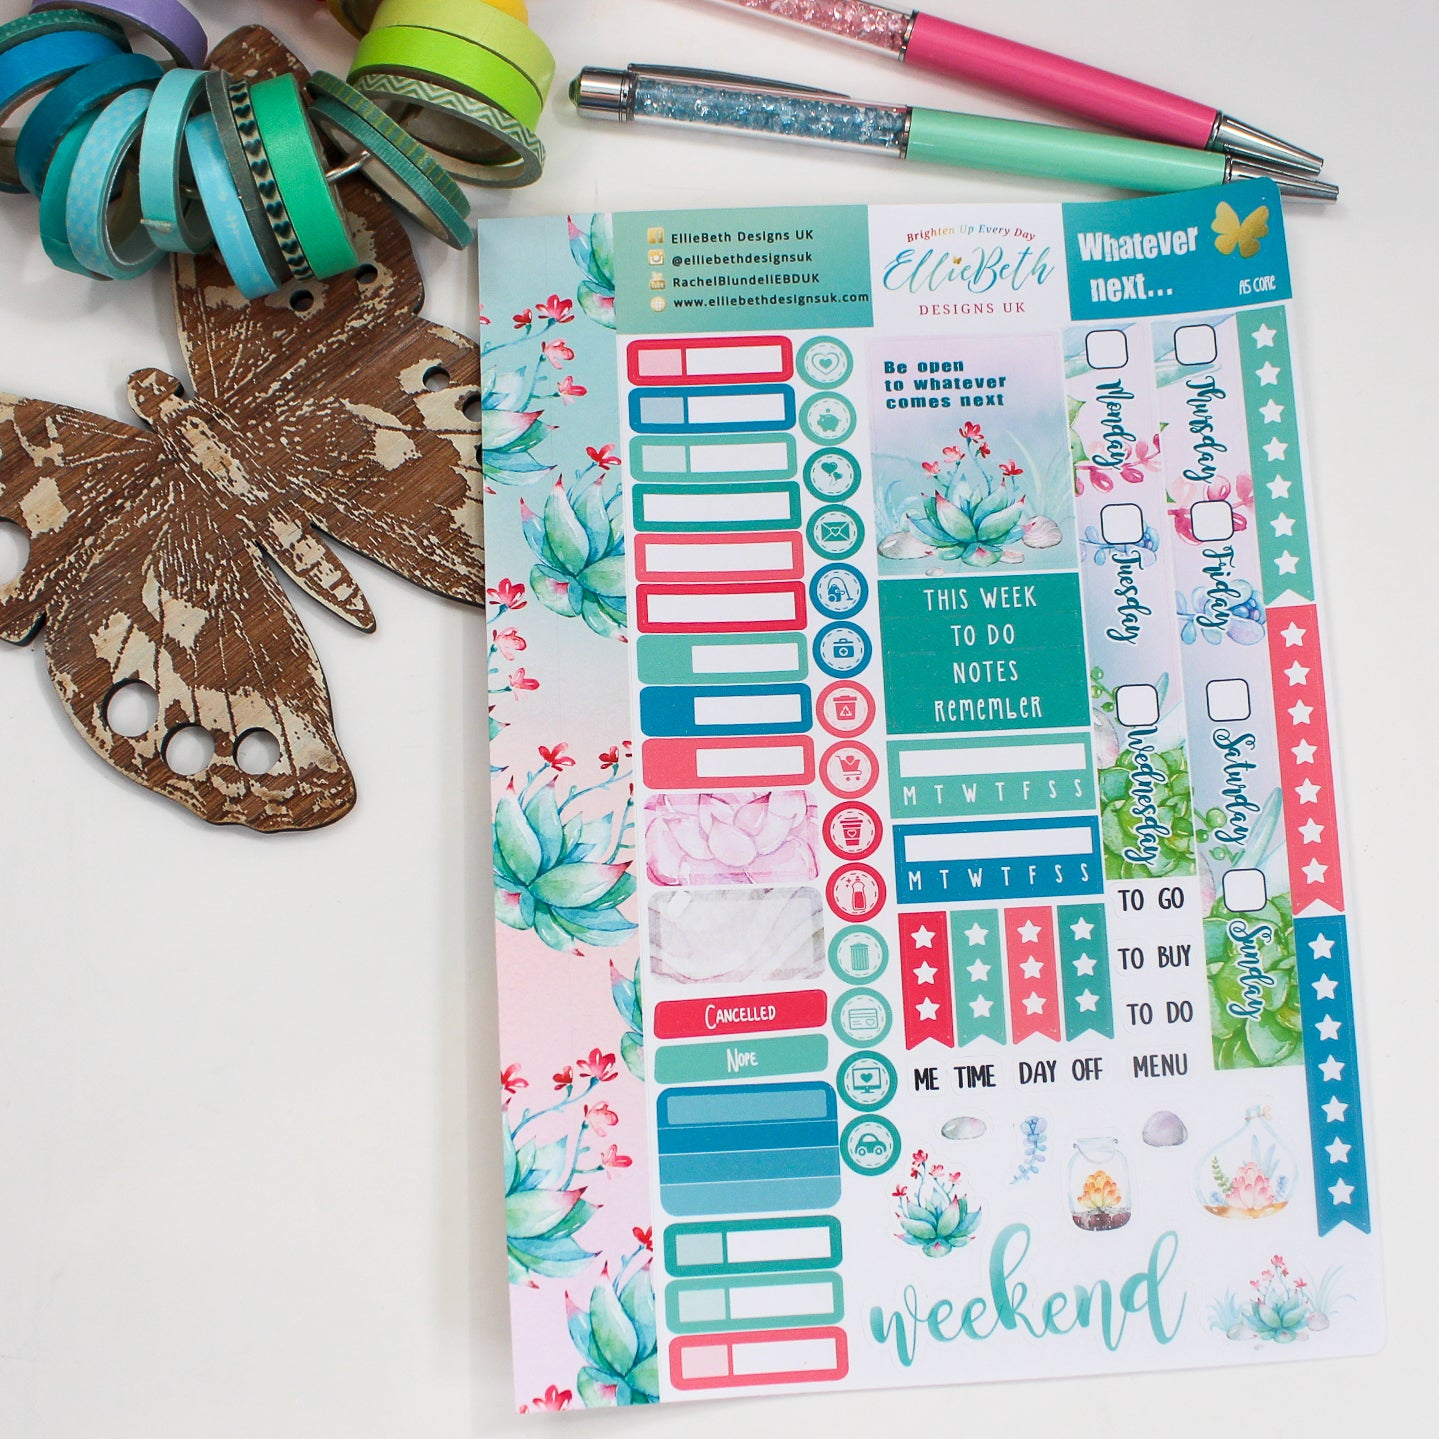 'Whatever Next...' - A5 Core Sheet - A5 binder ready planner stickers